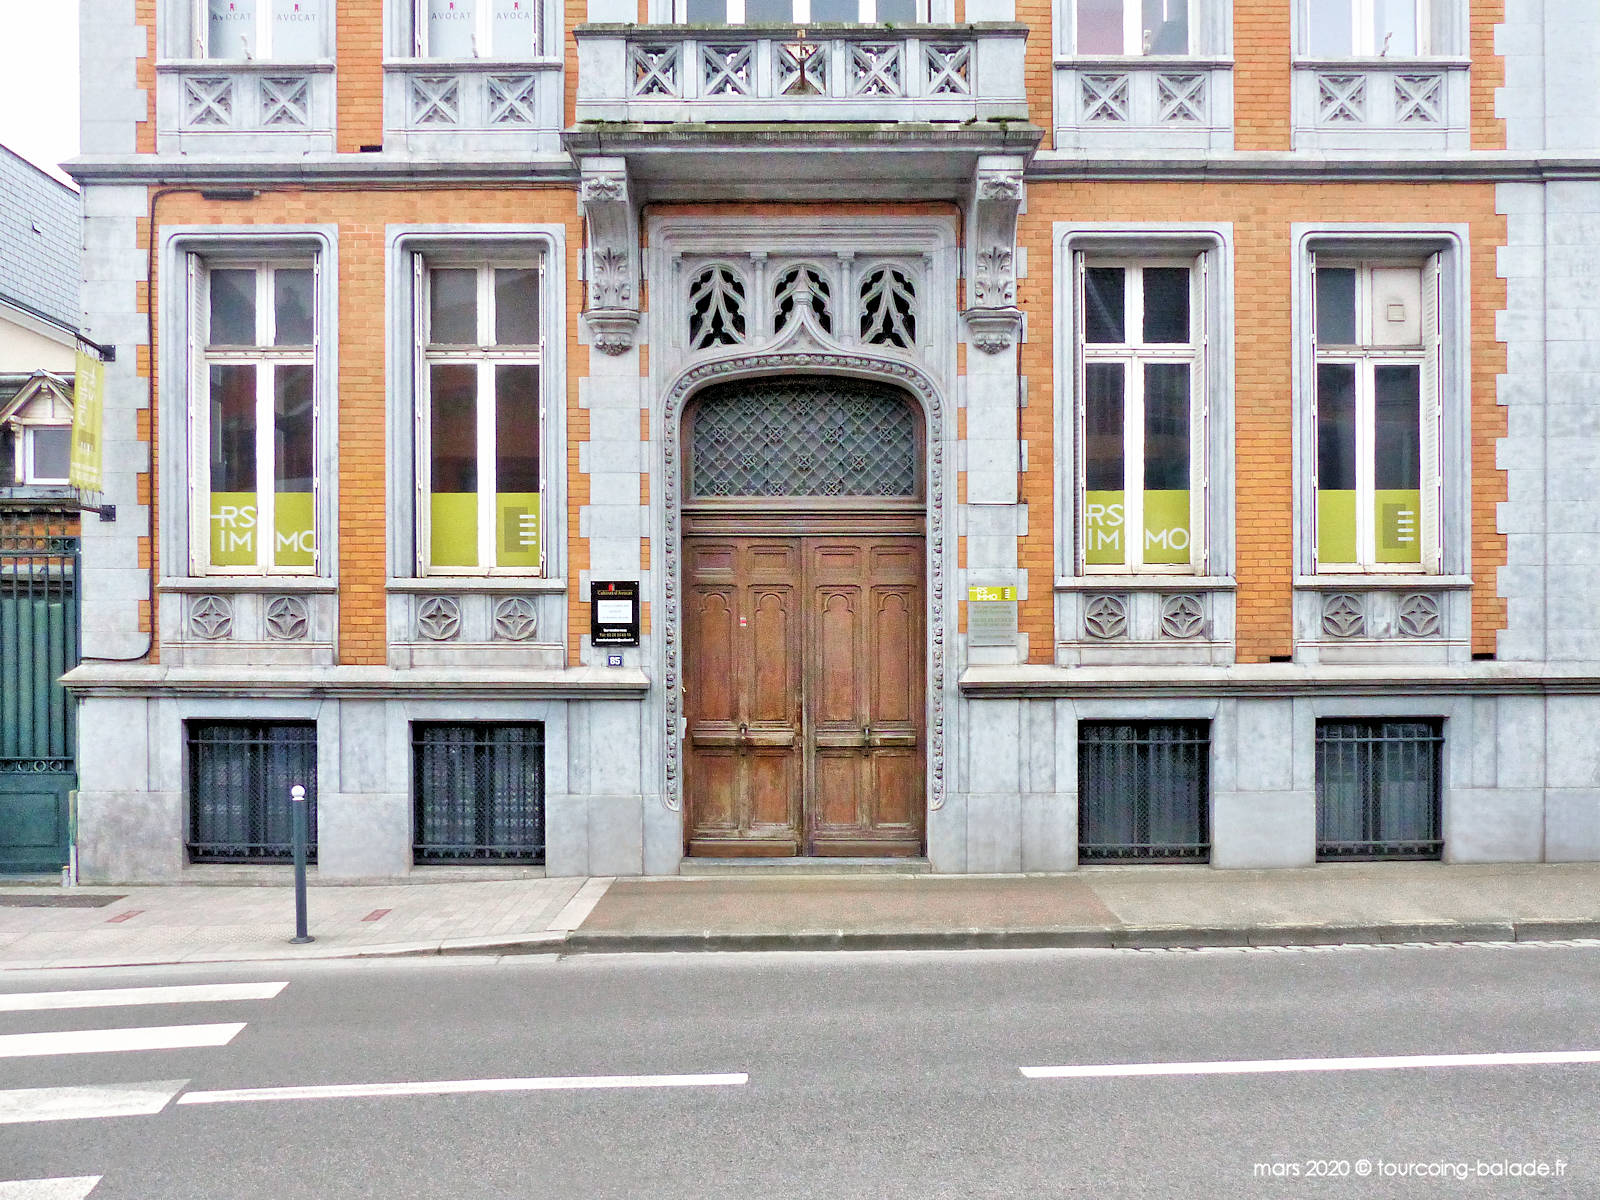 Agence Immobilière RS Immo, Tourcoing.